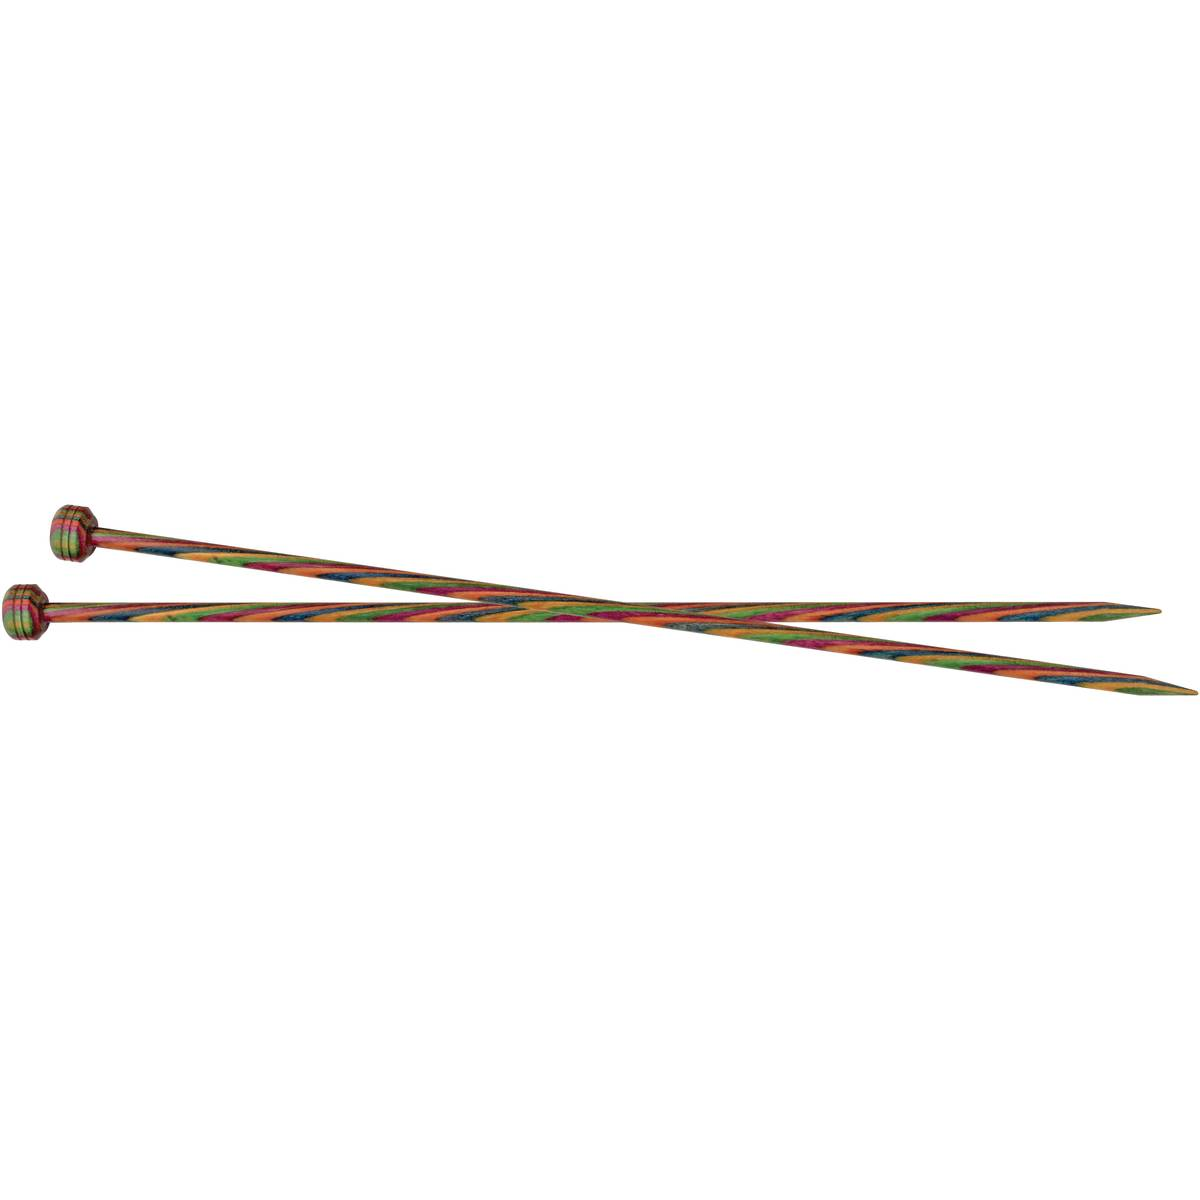 Symfonie Single Ended Knitting Needles Set 4.50 mm 30 cm